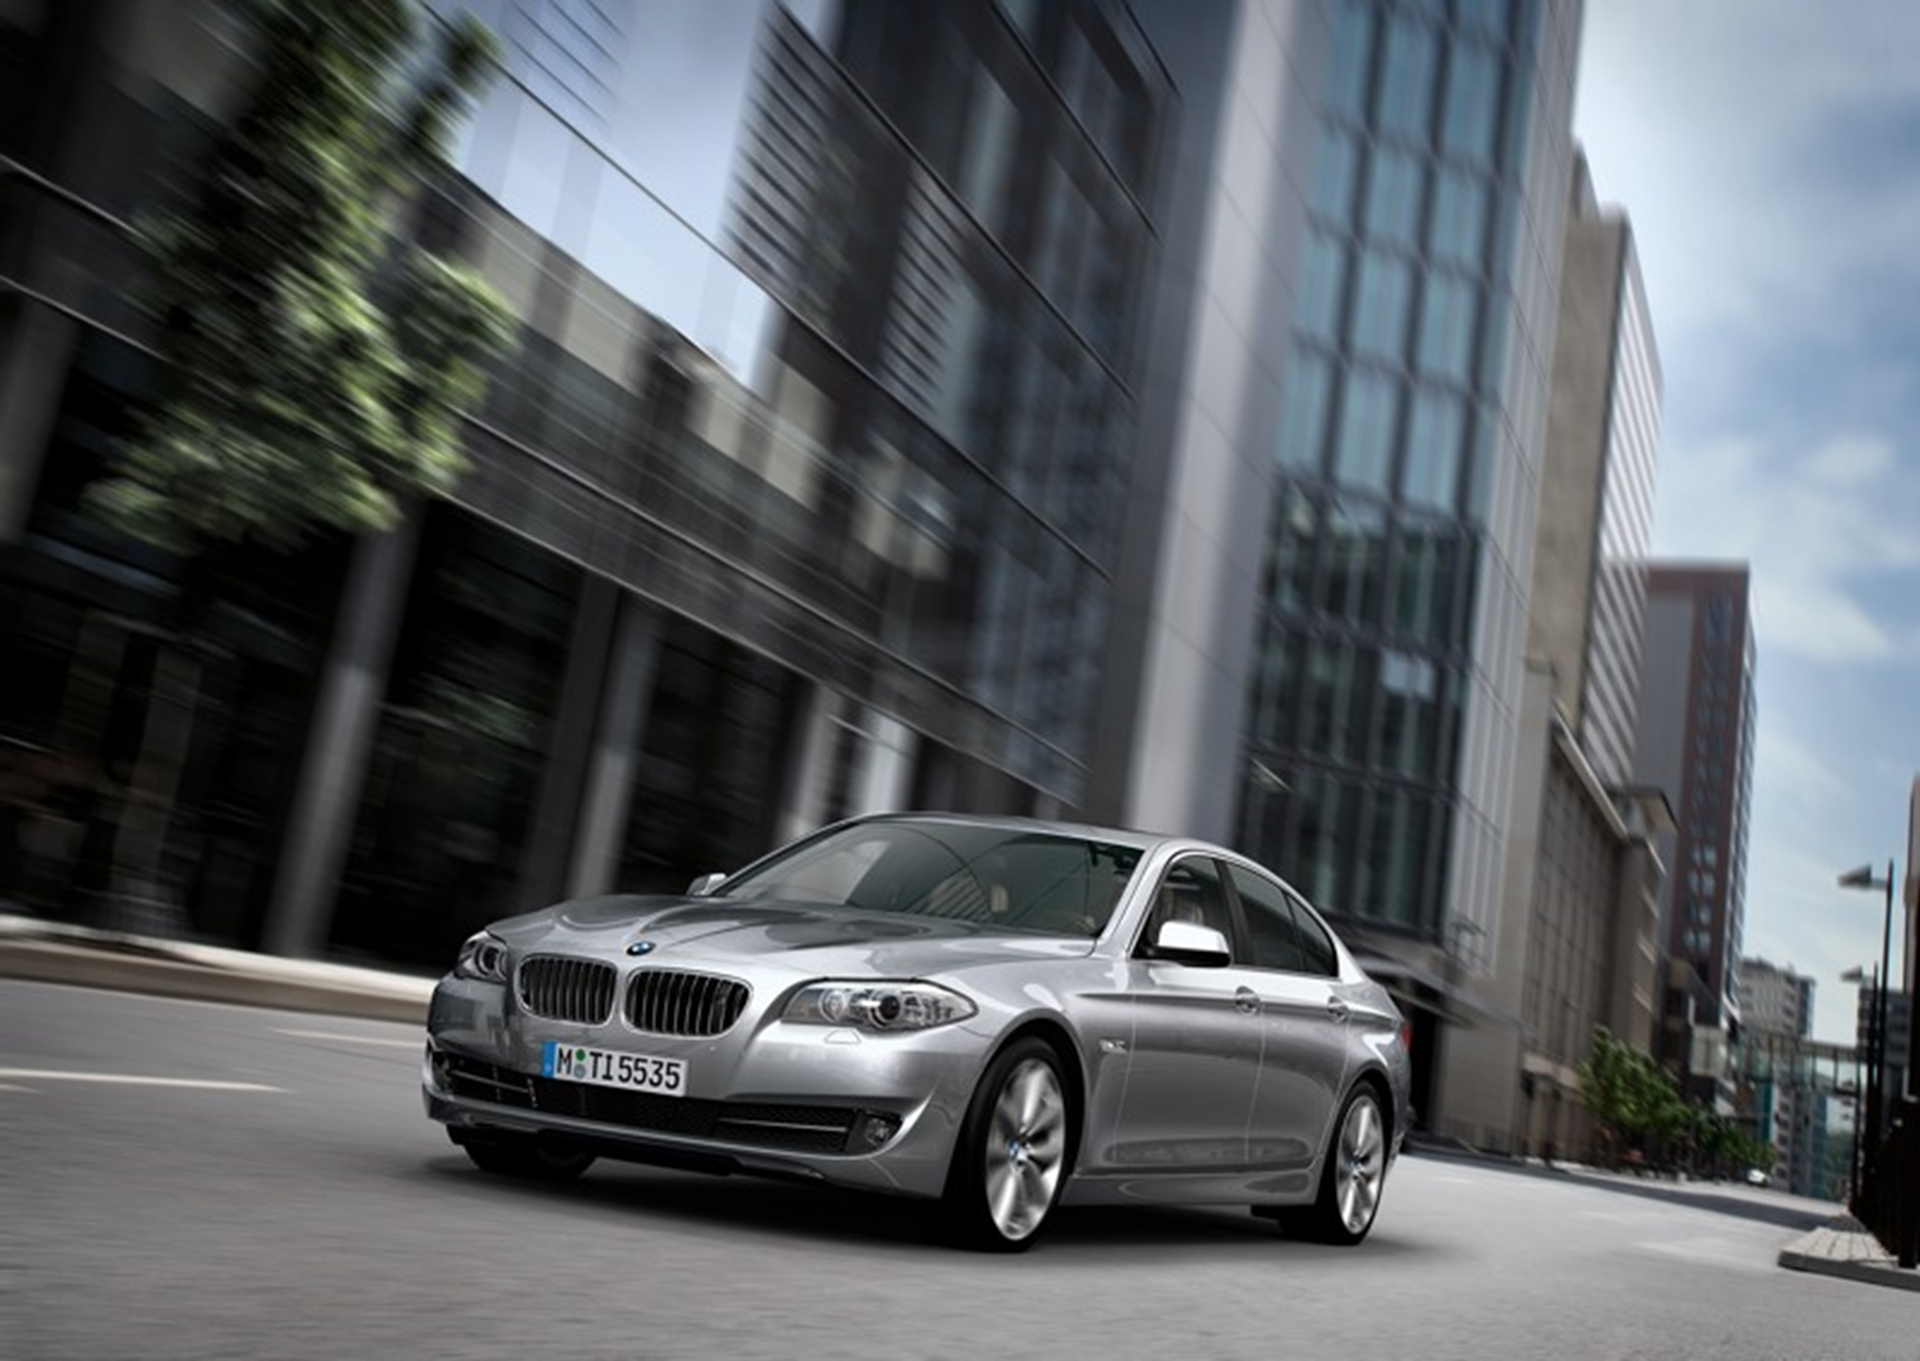 BMW 1 Series and BMW 5 Series as their favourites in the compact and ...